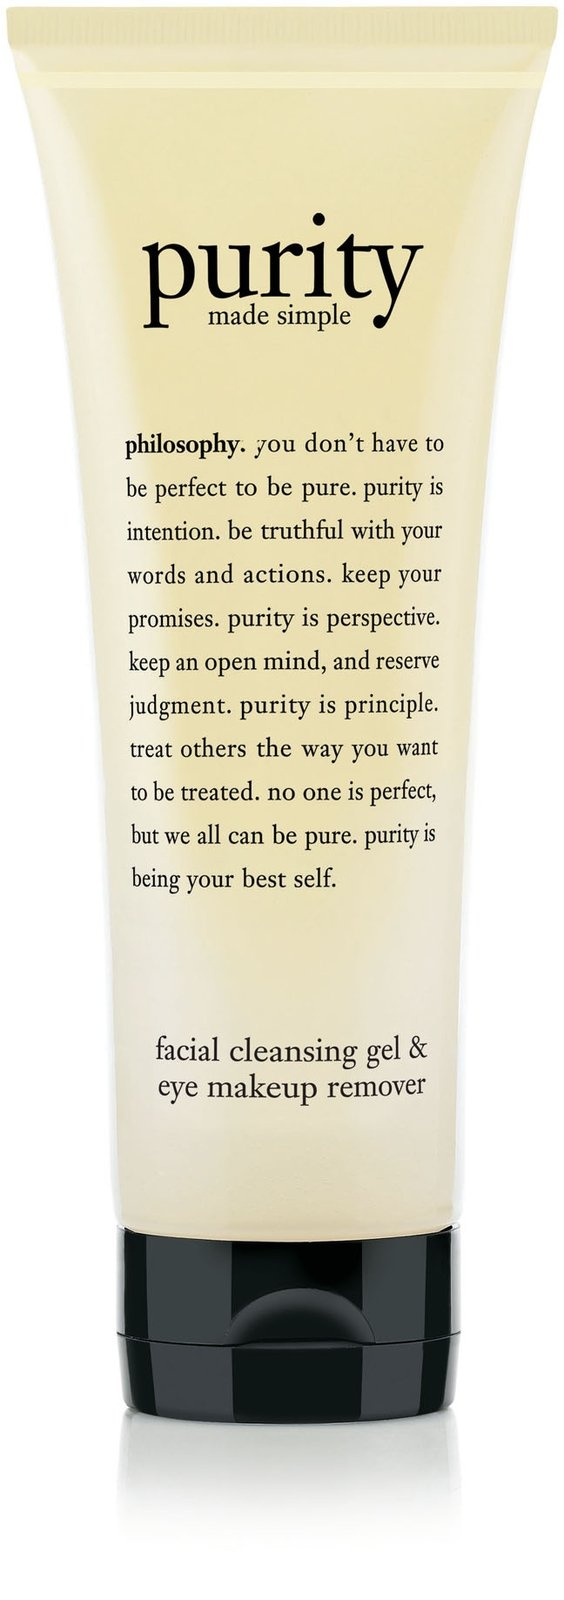 Philosophy Purity Gel Cleanser - This is so much better than the original. It takes just a small pea size amount. It's going to last me much longer & it gets off eye makeup even better too! Love it! Number one in my book!